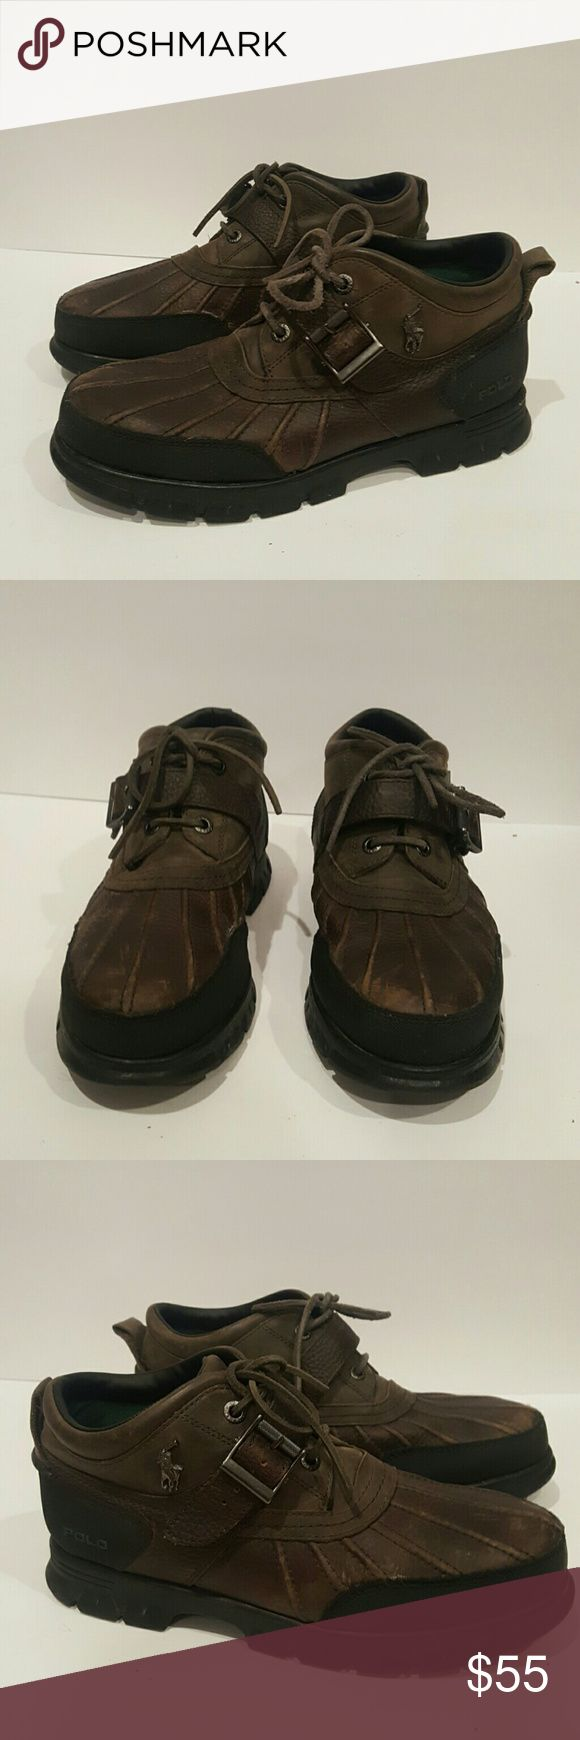 POLO MENS SIZE 10 DOVER 3 III mens boat shoe boot POLO BY RALPH LAUREN MENS DUCK SHOE WINTER BOOT SHOE BOAT SHOES SIZE 1O GREAT SHAPE OLIVE AND BLACK Polo By Ralph Lauren Shoes Rain & Snow Boots